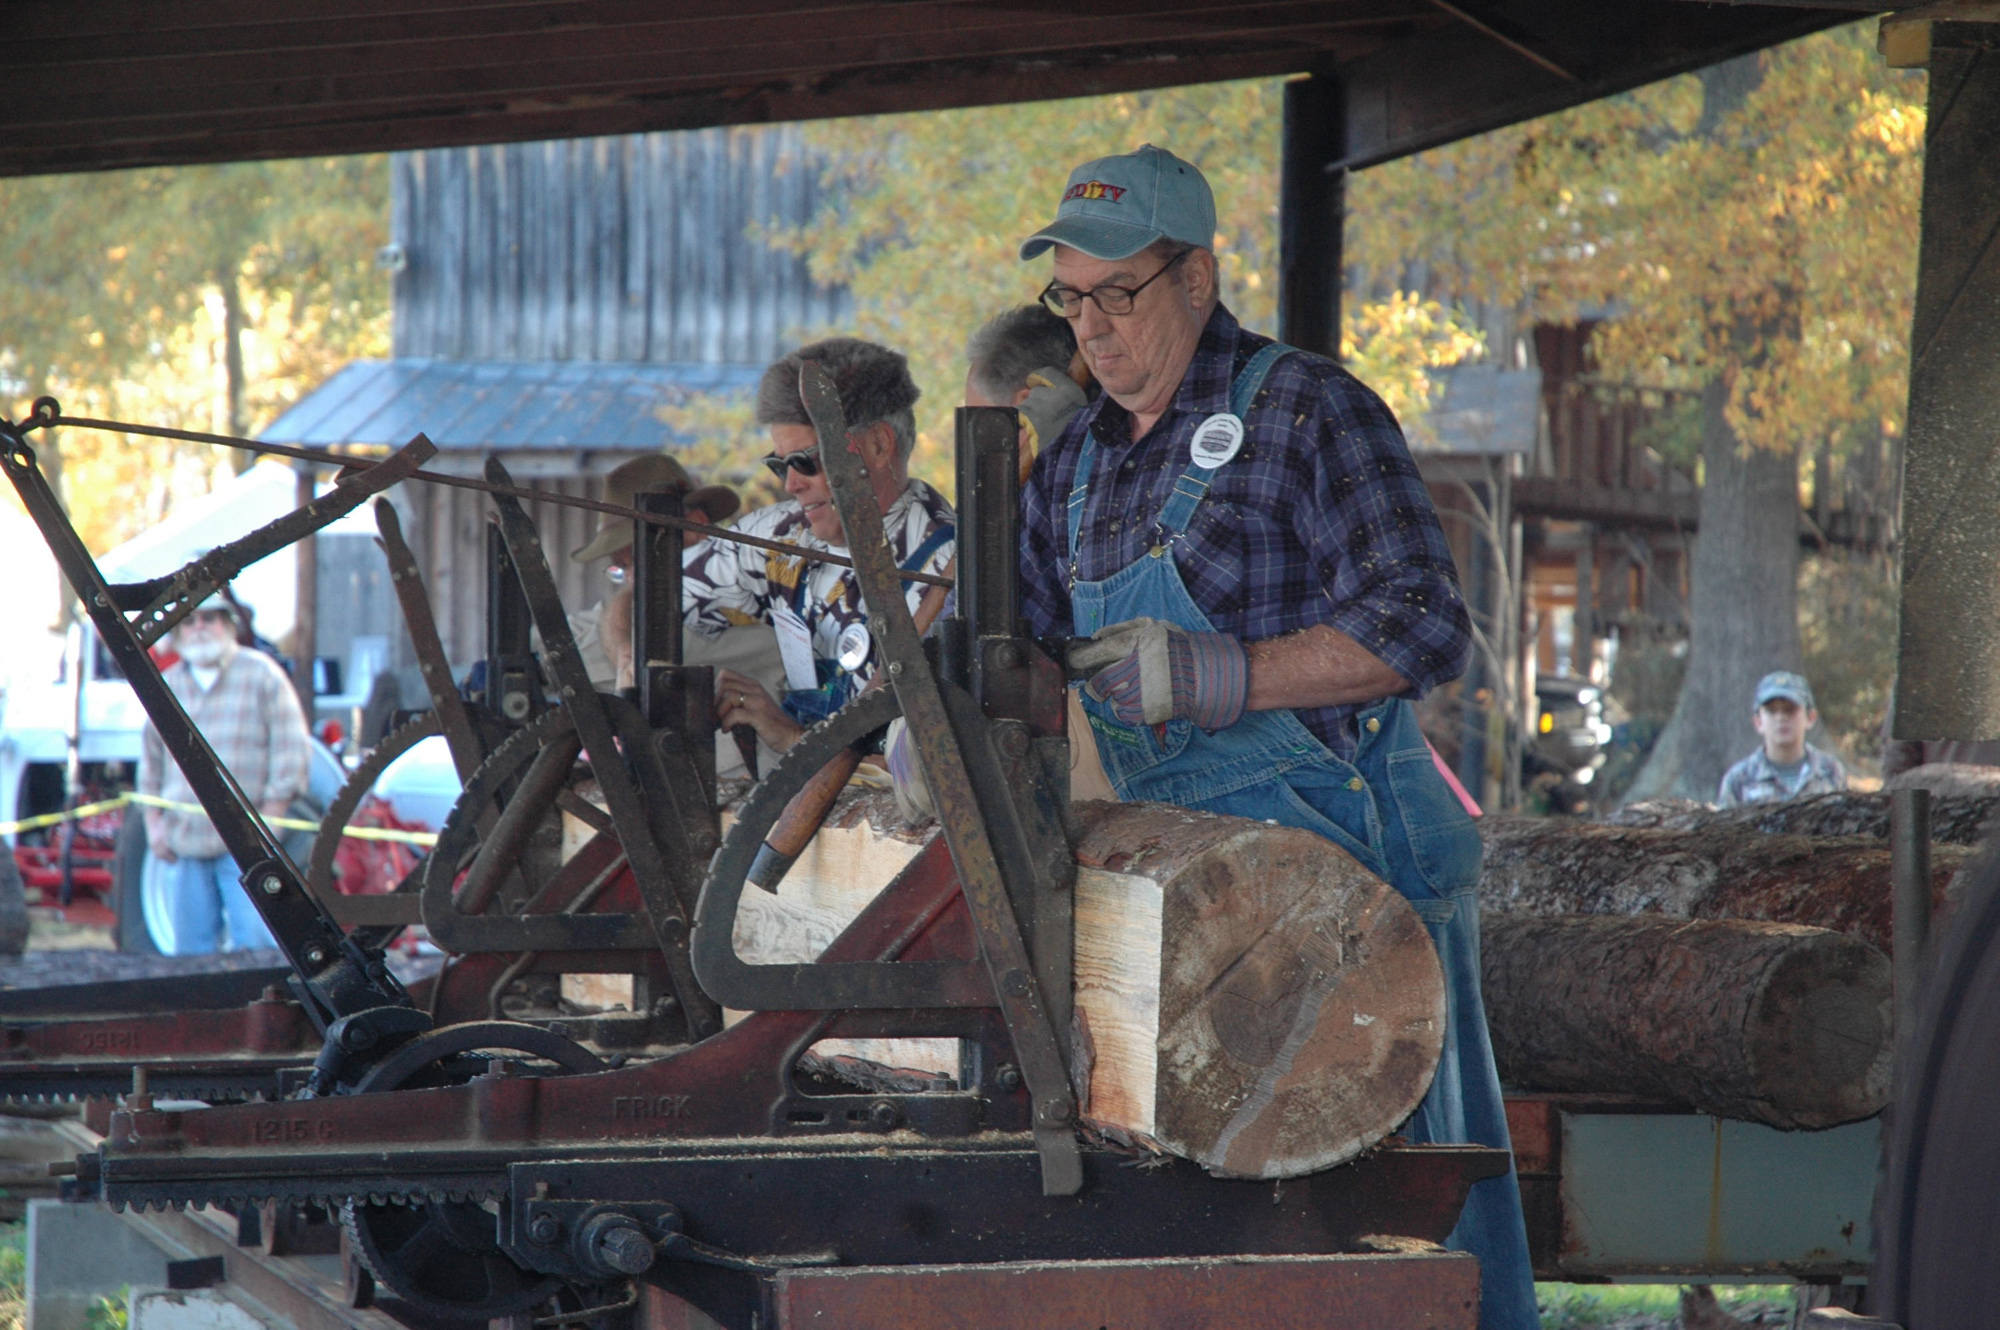 See demonstrations of the way lumber used to be cut using the Glaze sawmill